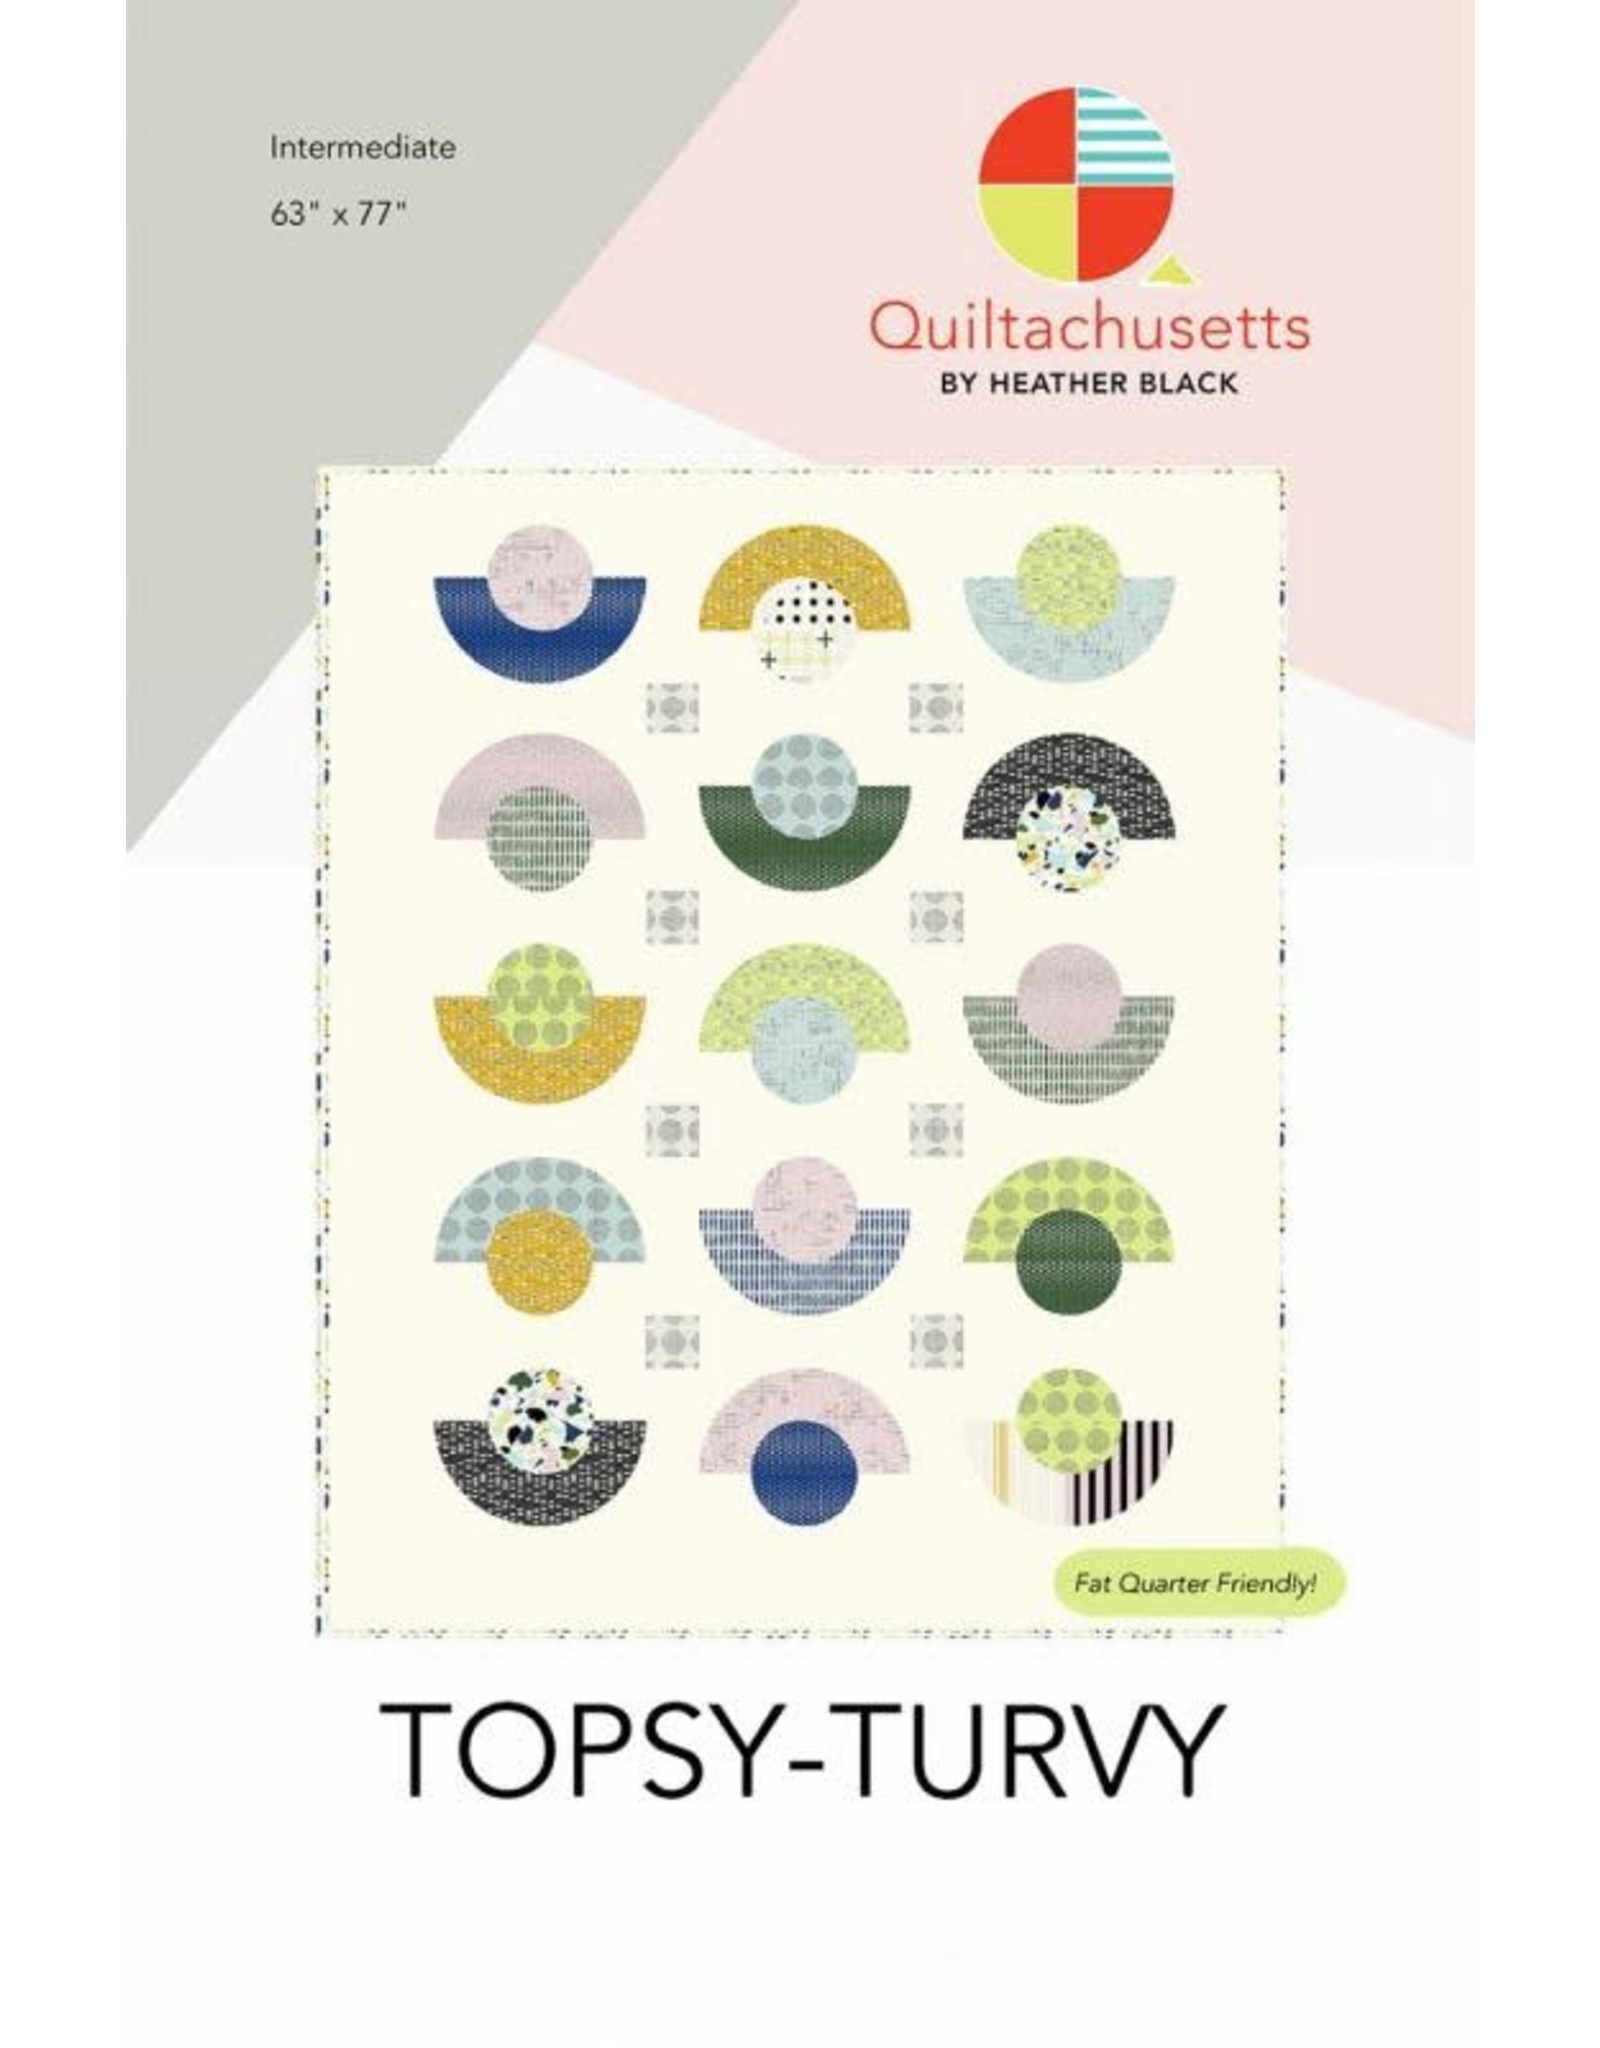 Quiltachusetts Topsy-Turvy Quilt Pattern